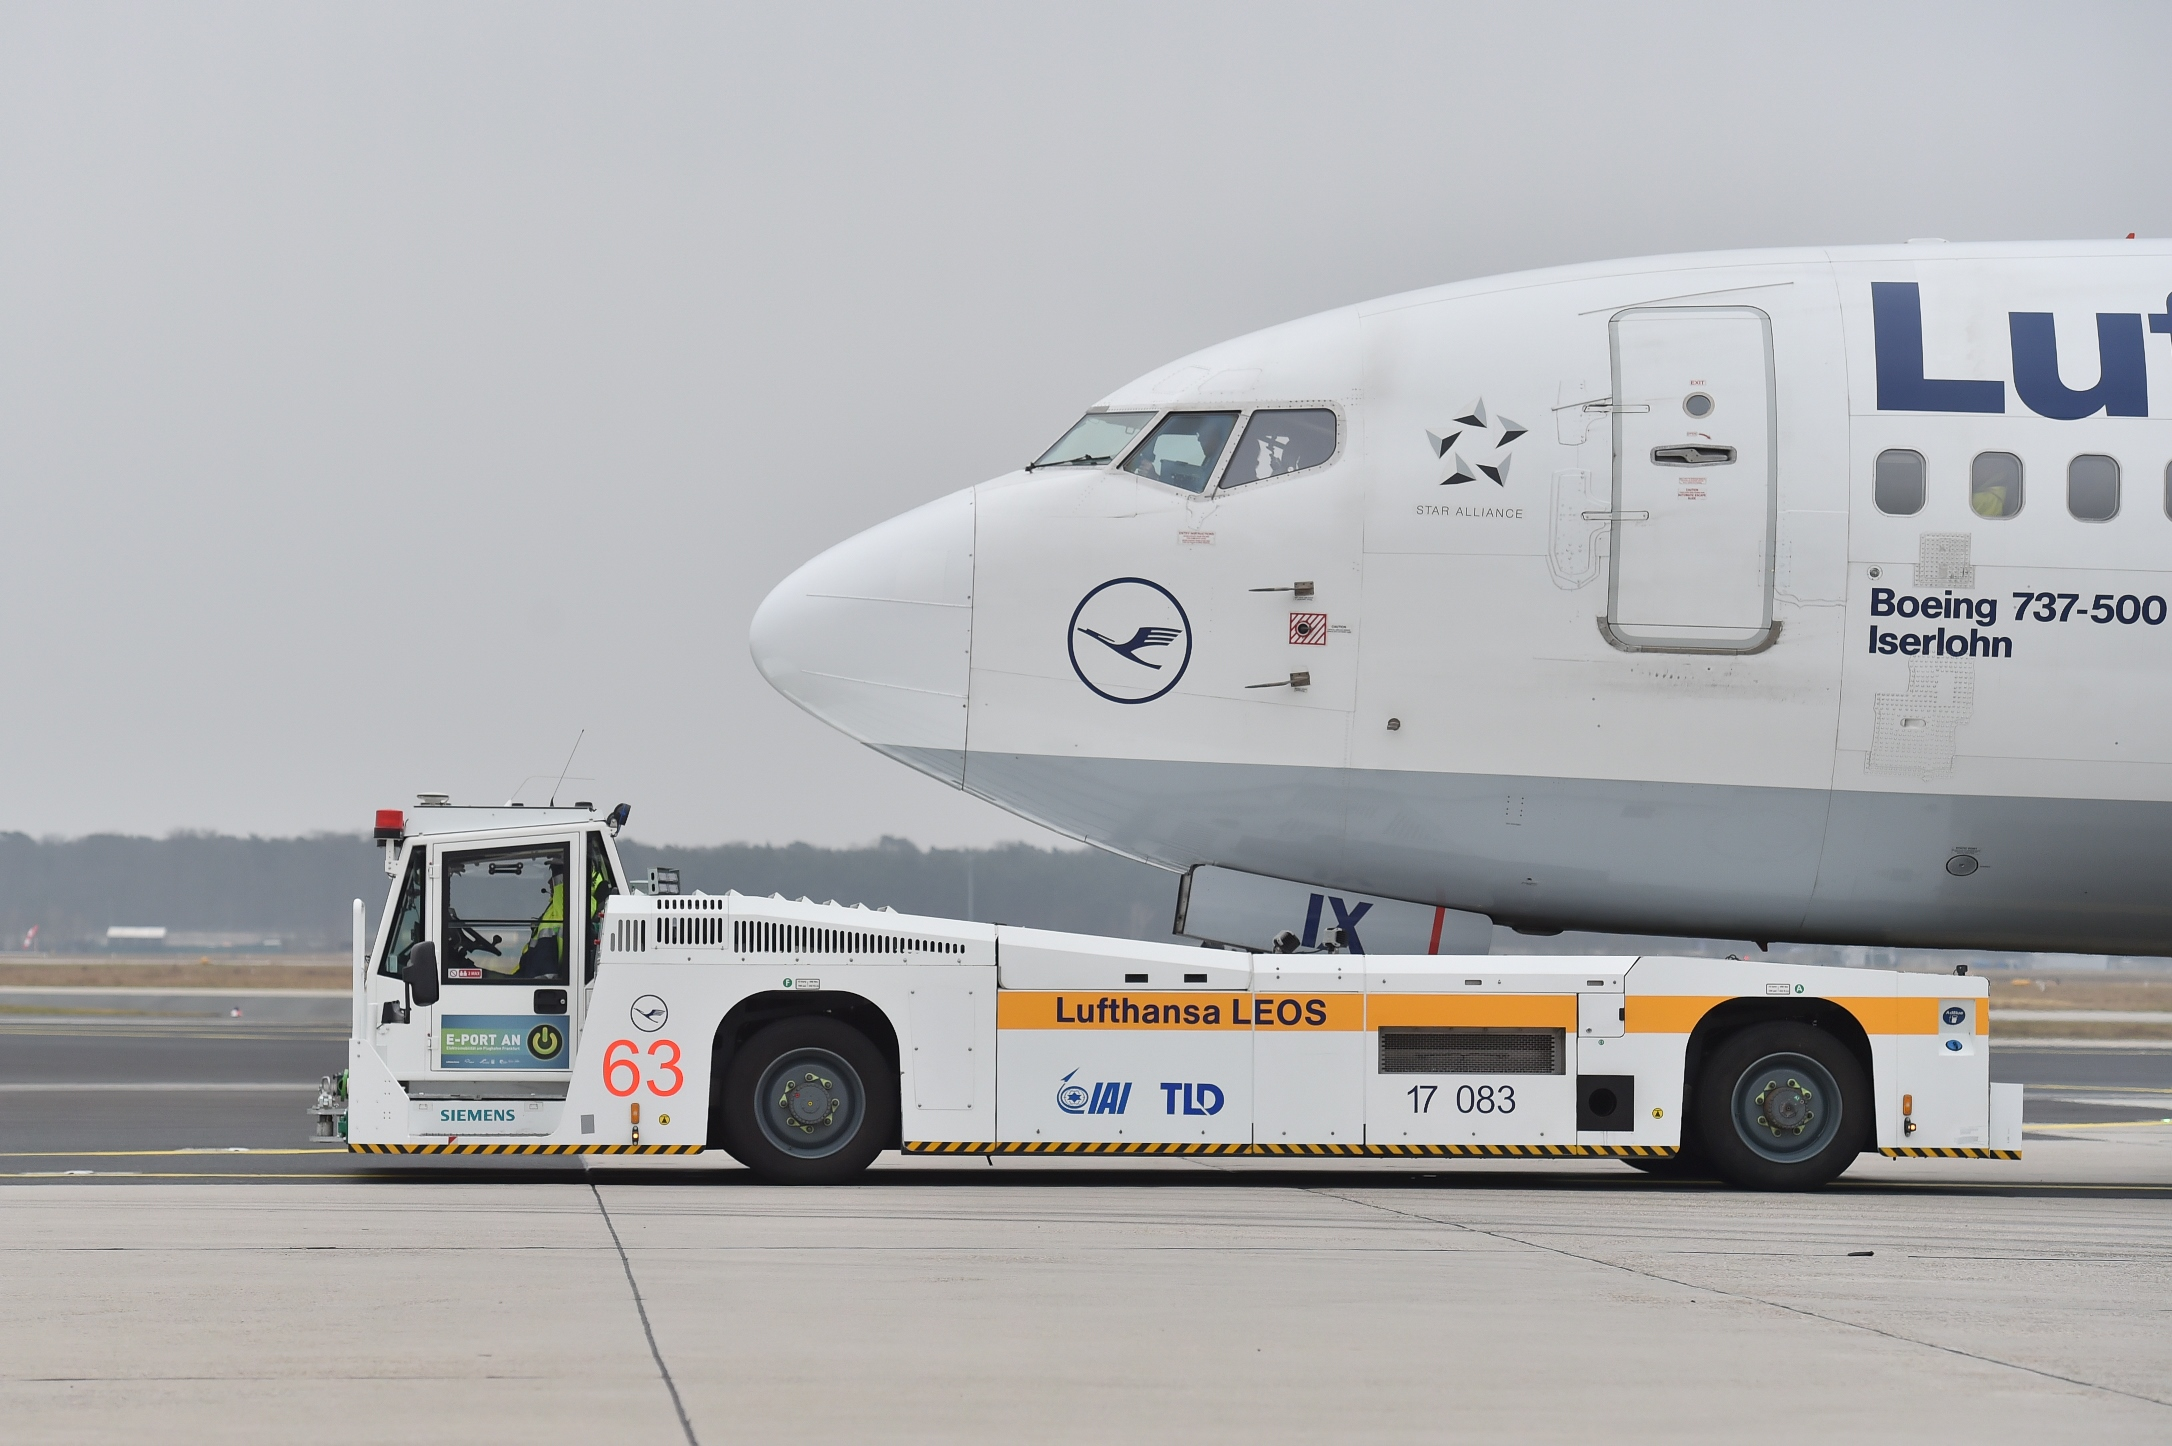 TaxiBot_Lufthansa_LEOS_Frankfurt_Airport_Pushback_Taxi